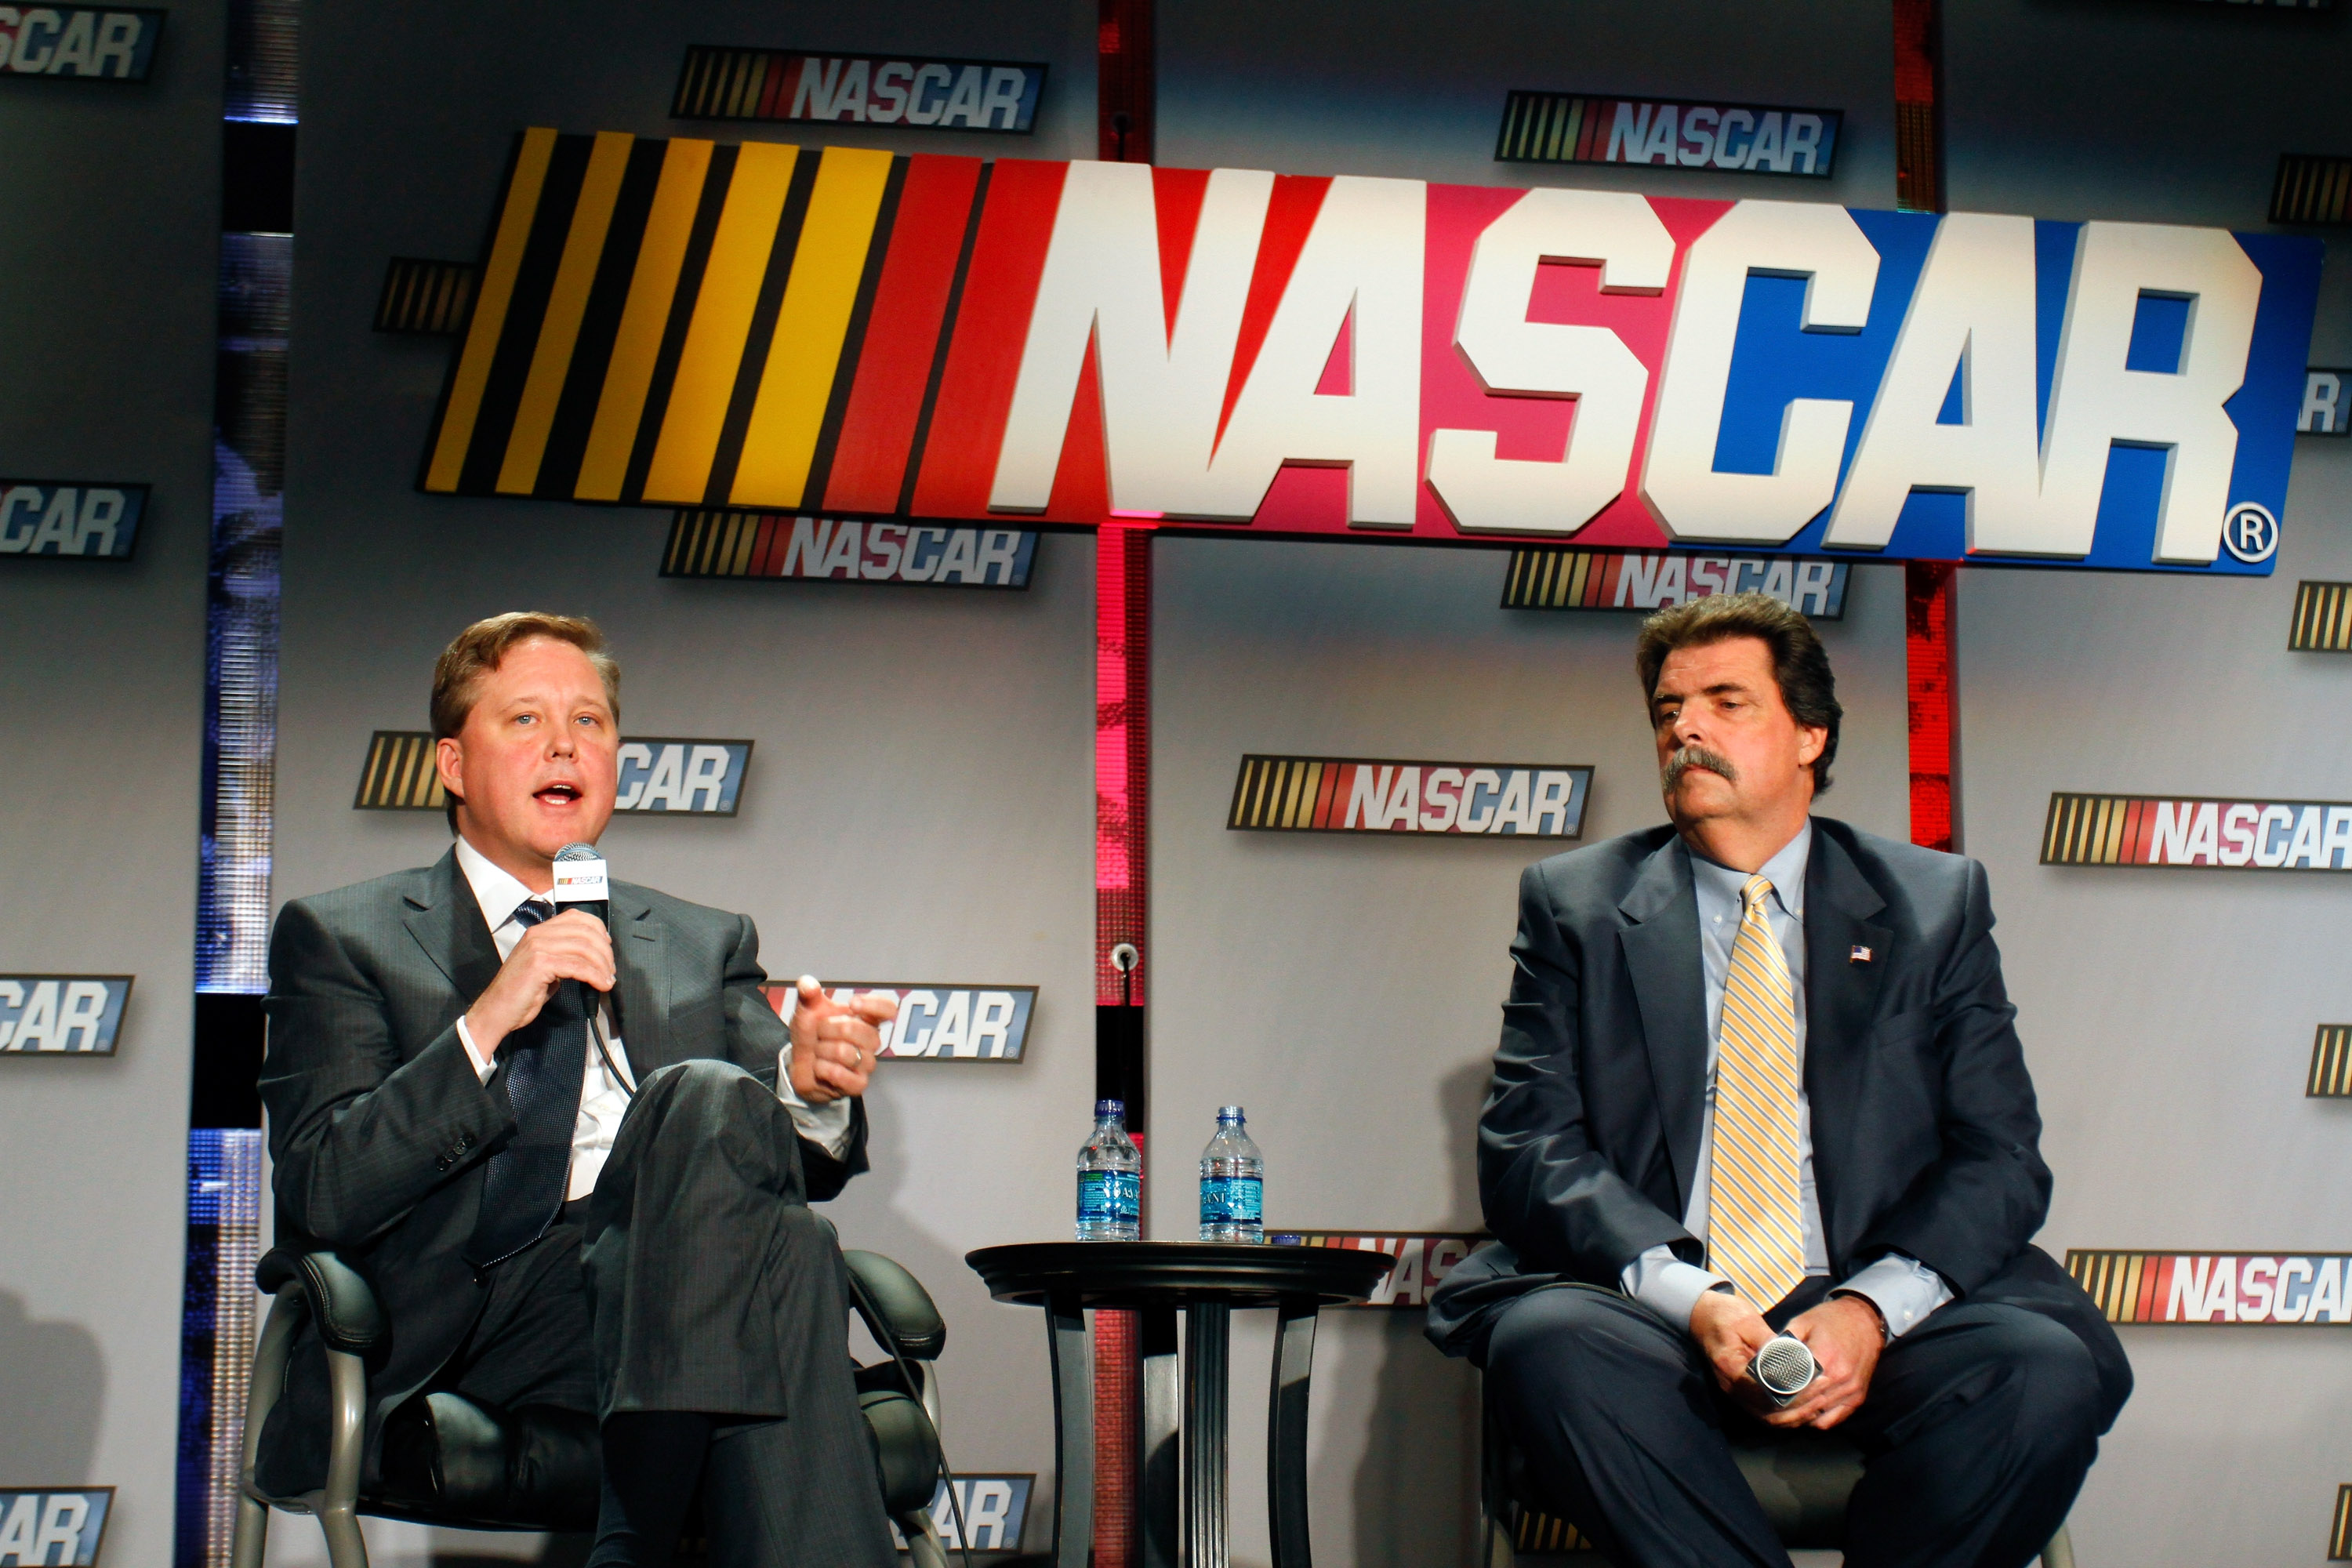 Brian France (left) and Mike Helton might consider the musings of their fans, before their fans cease to be fans.